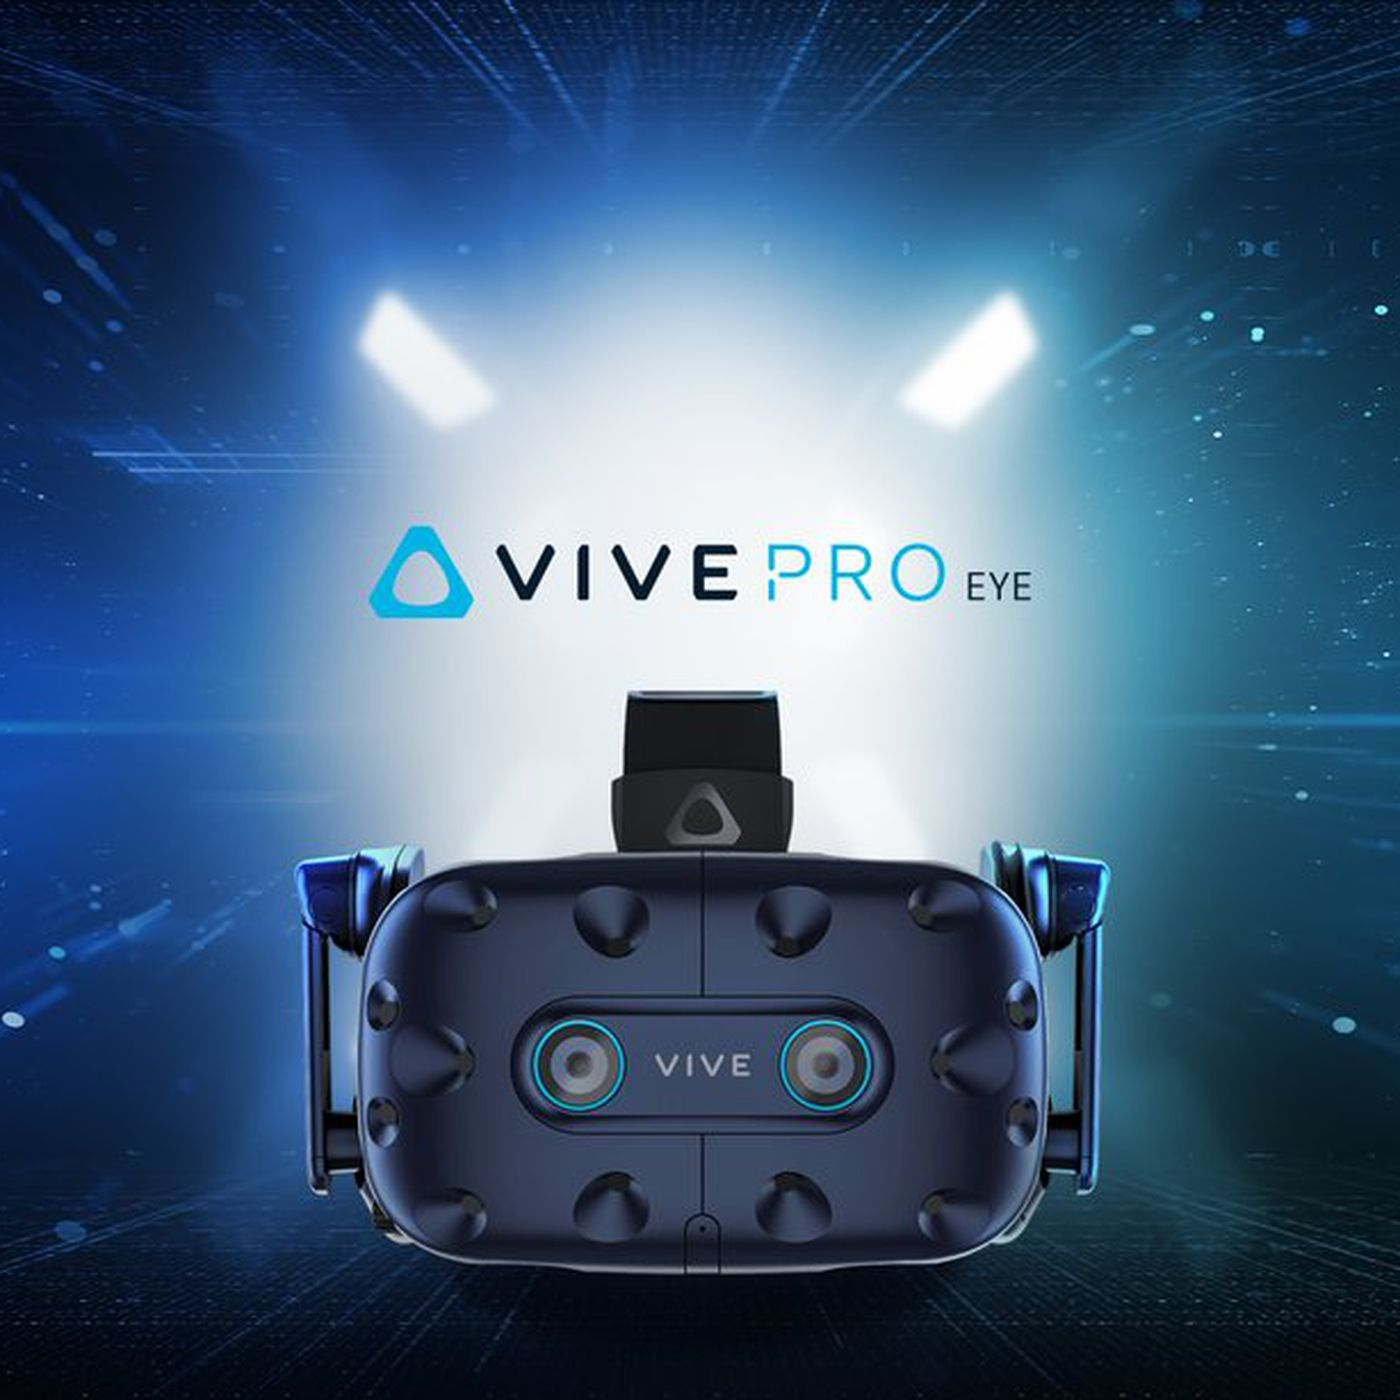 HTC's Vive Pro Eye headset steals its optimizations from